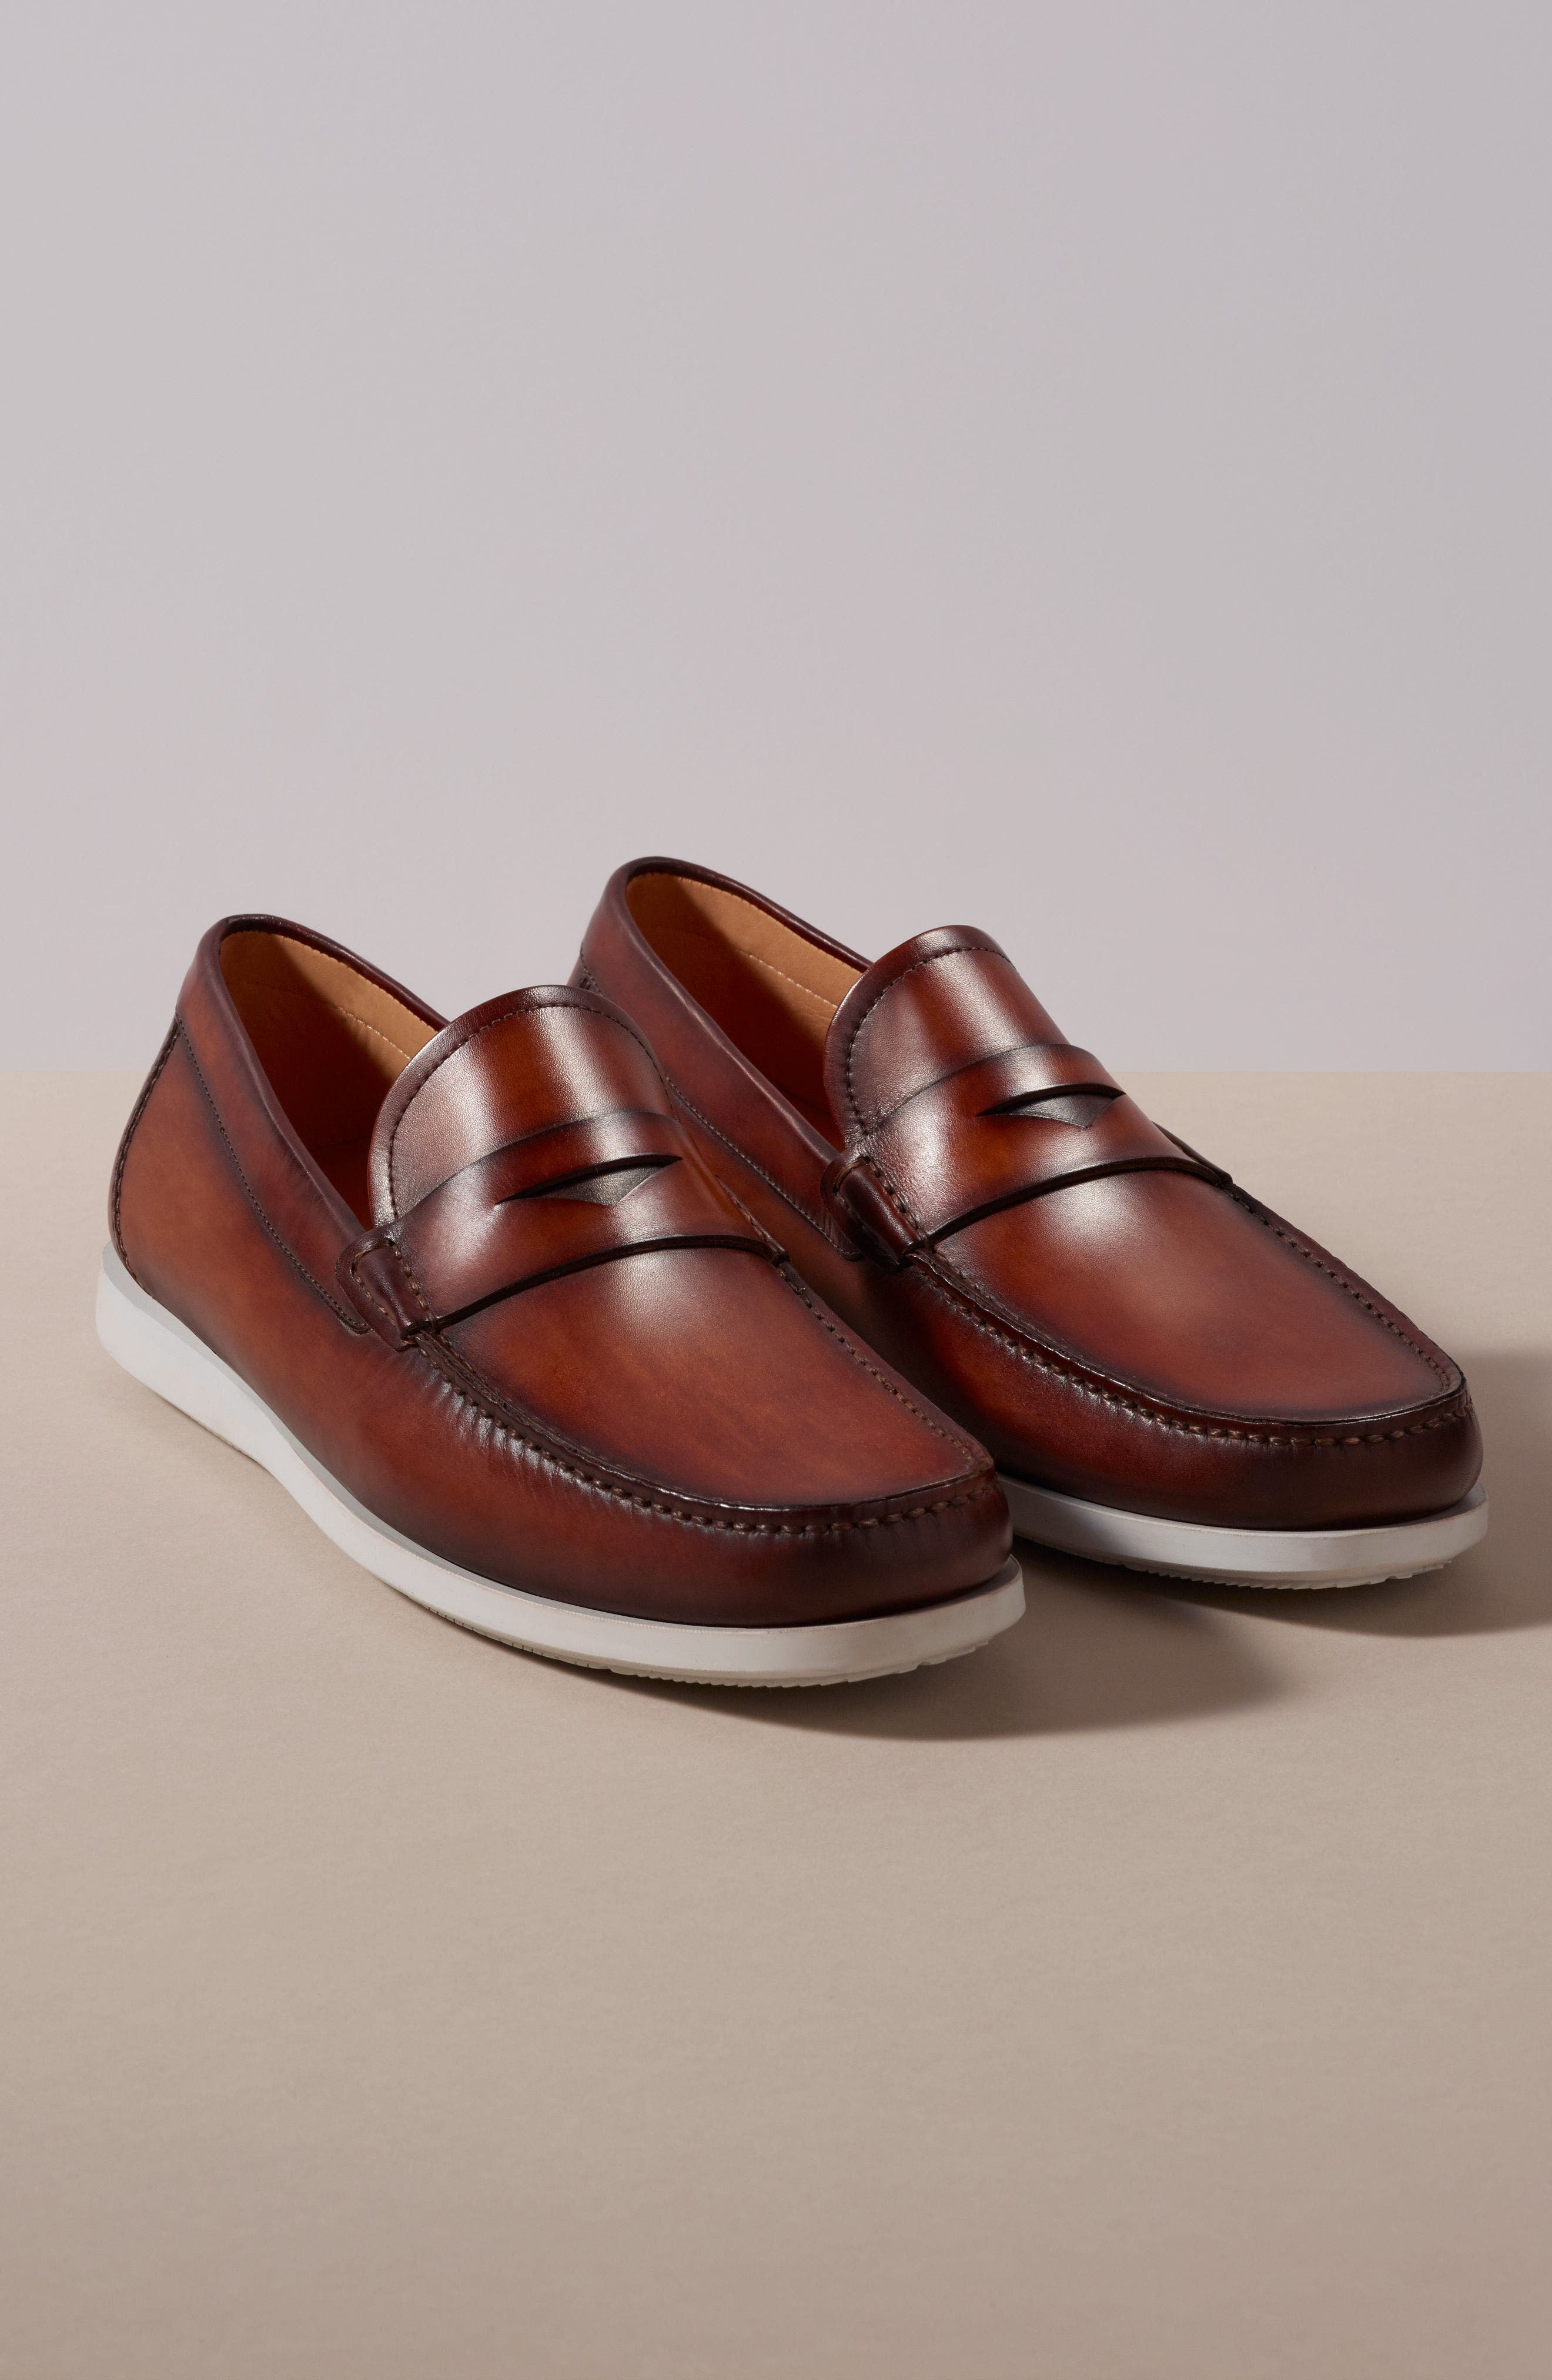 Laguna Penny Loafer,                             Alternate thumbnail 8, color,                             MID-BROWN LEATHER